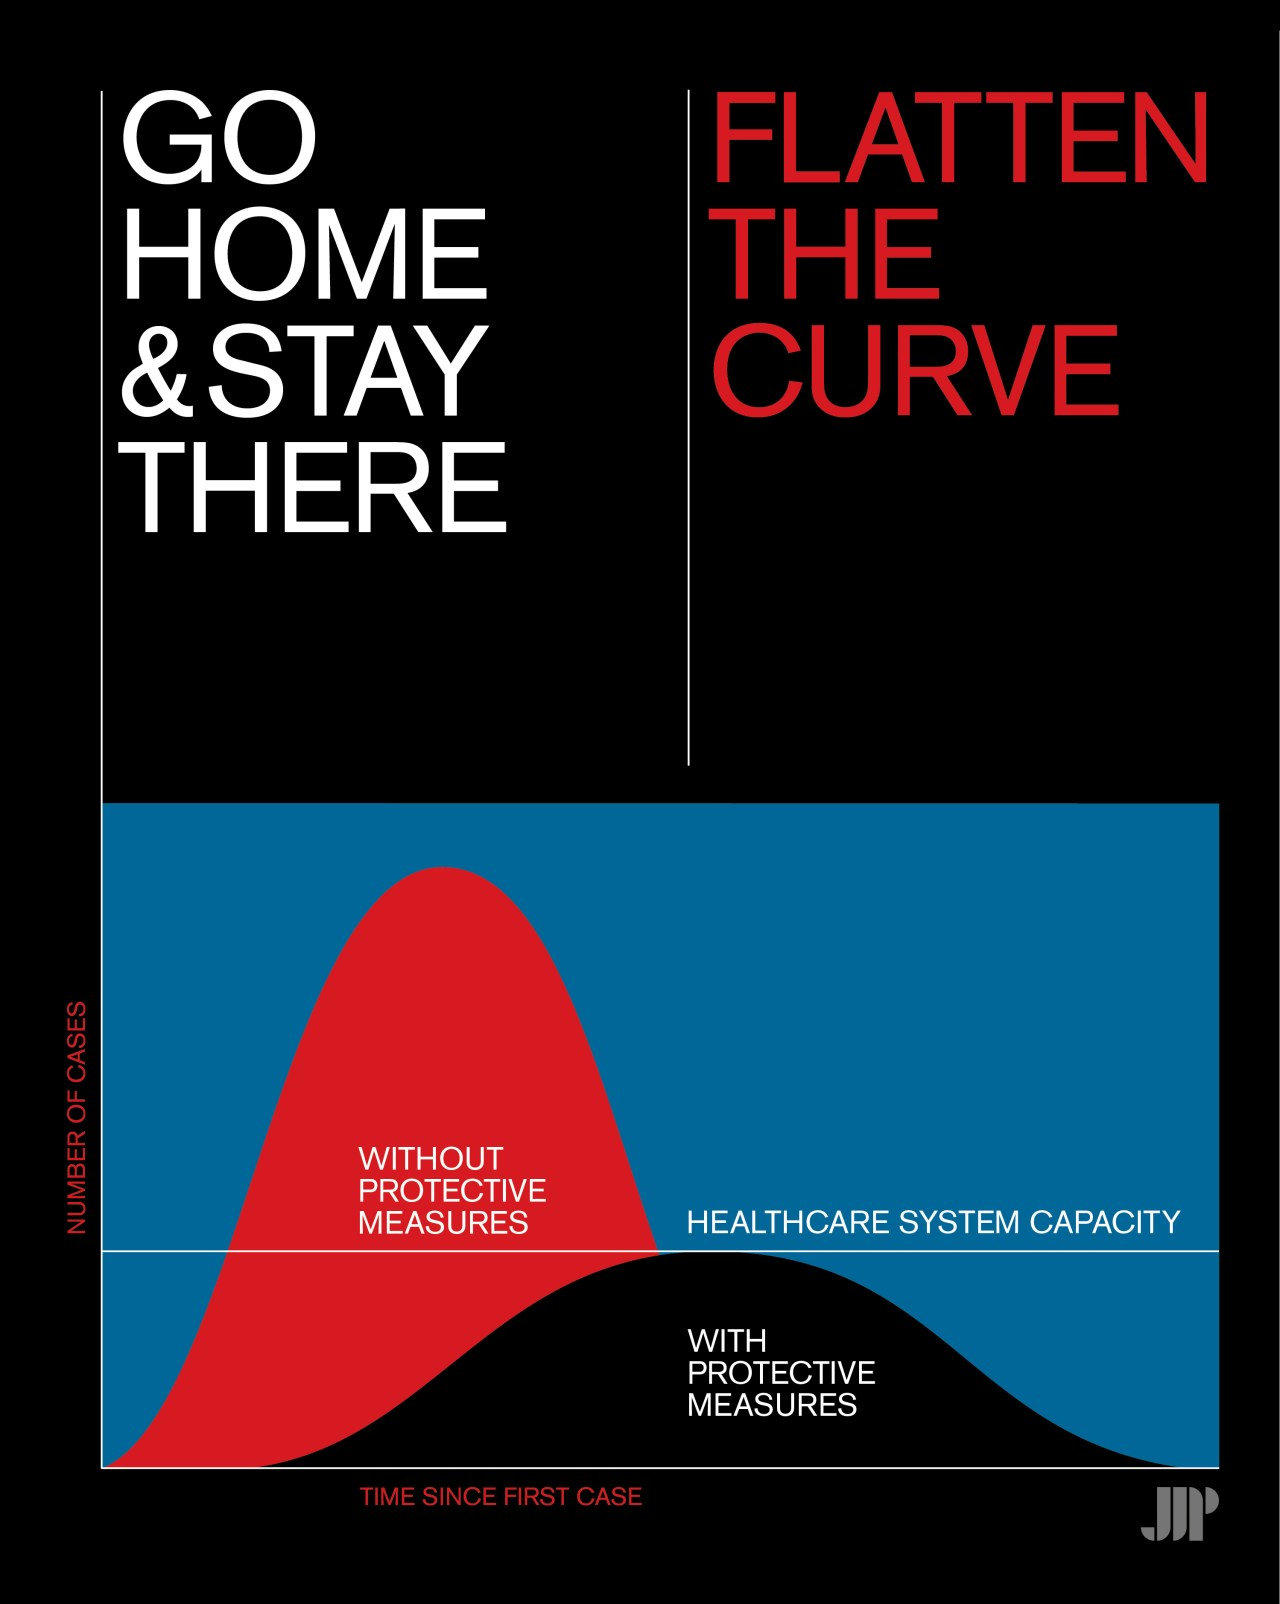 Go Home and Stay There - Flatten the Curve